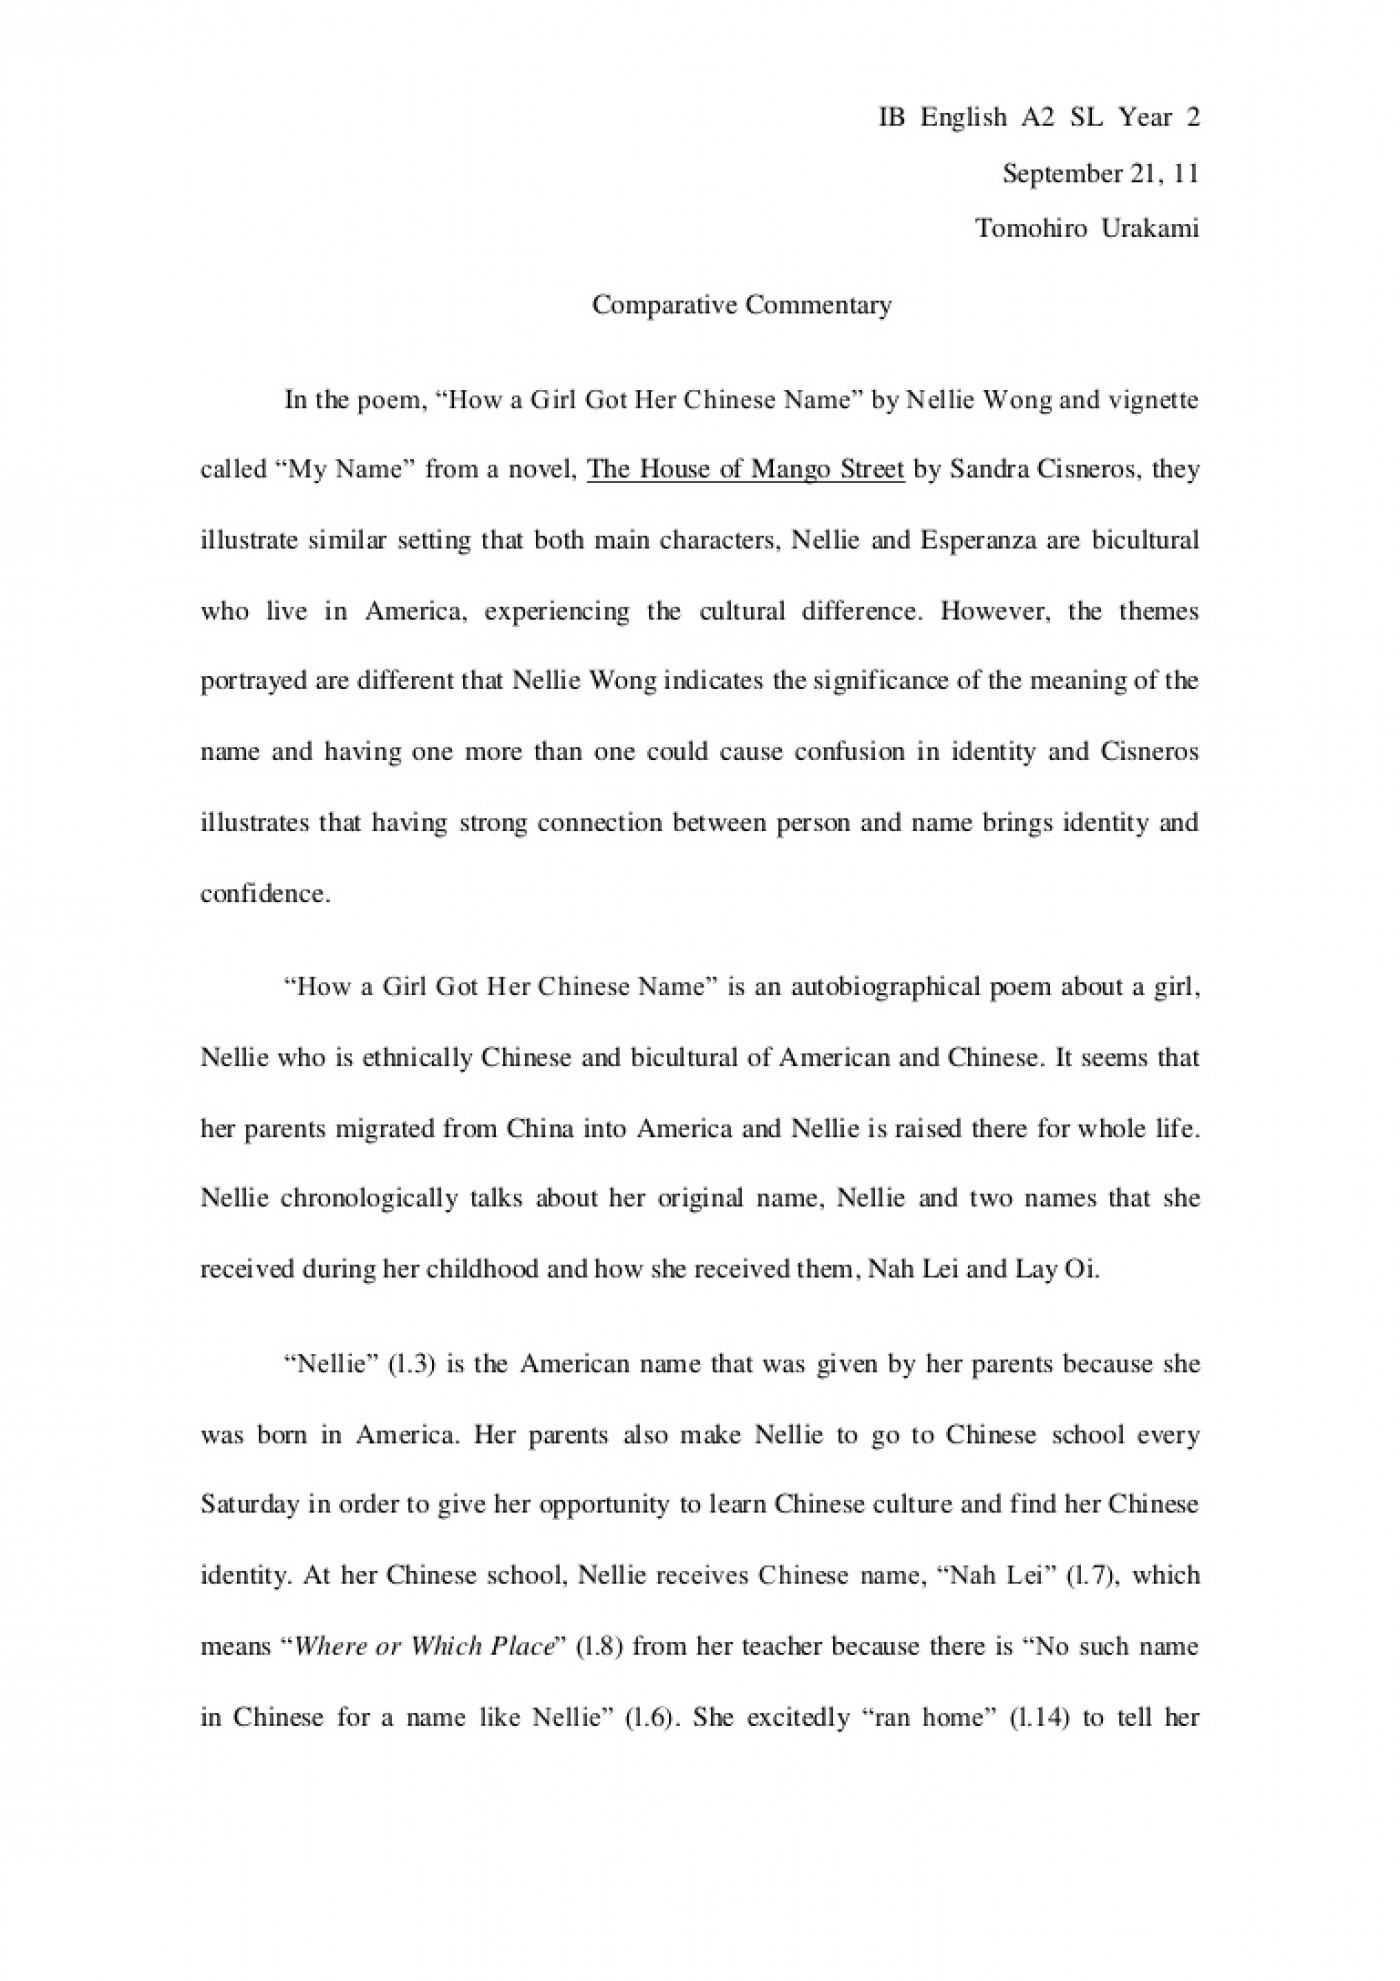 008 Compare And Contrast Essays Comparativeessaydraft Phpapp02 Thumbnail Magnificent Essay Examples Free For Elementary Students College Level 1400